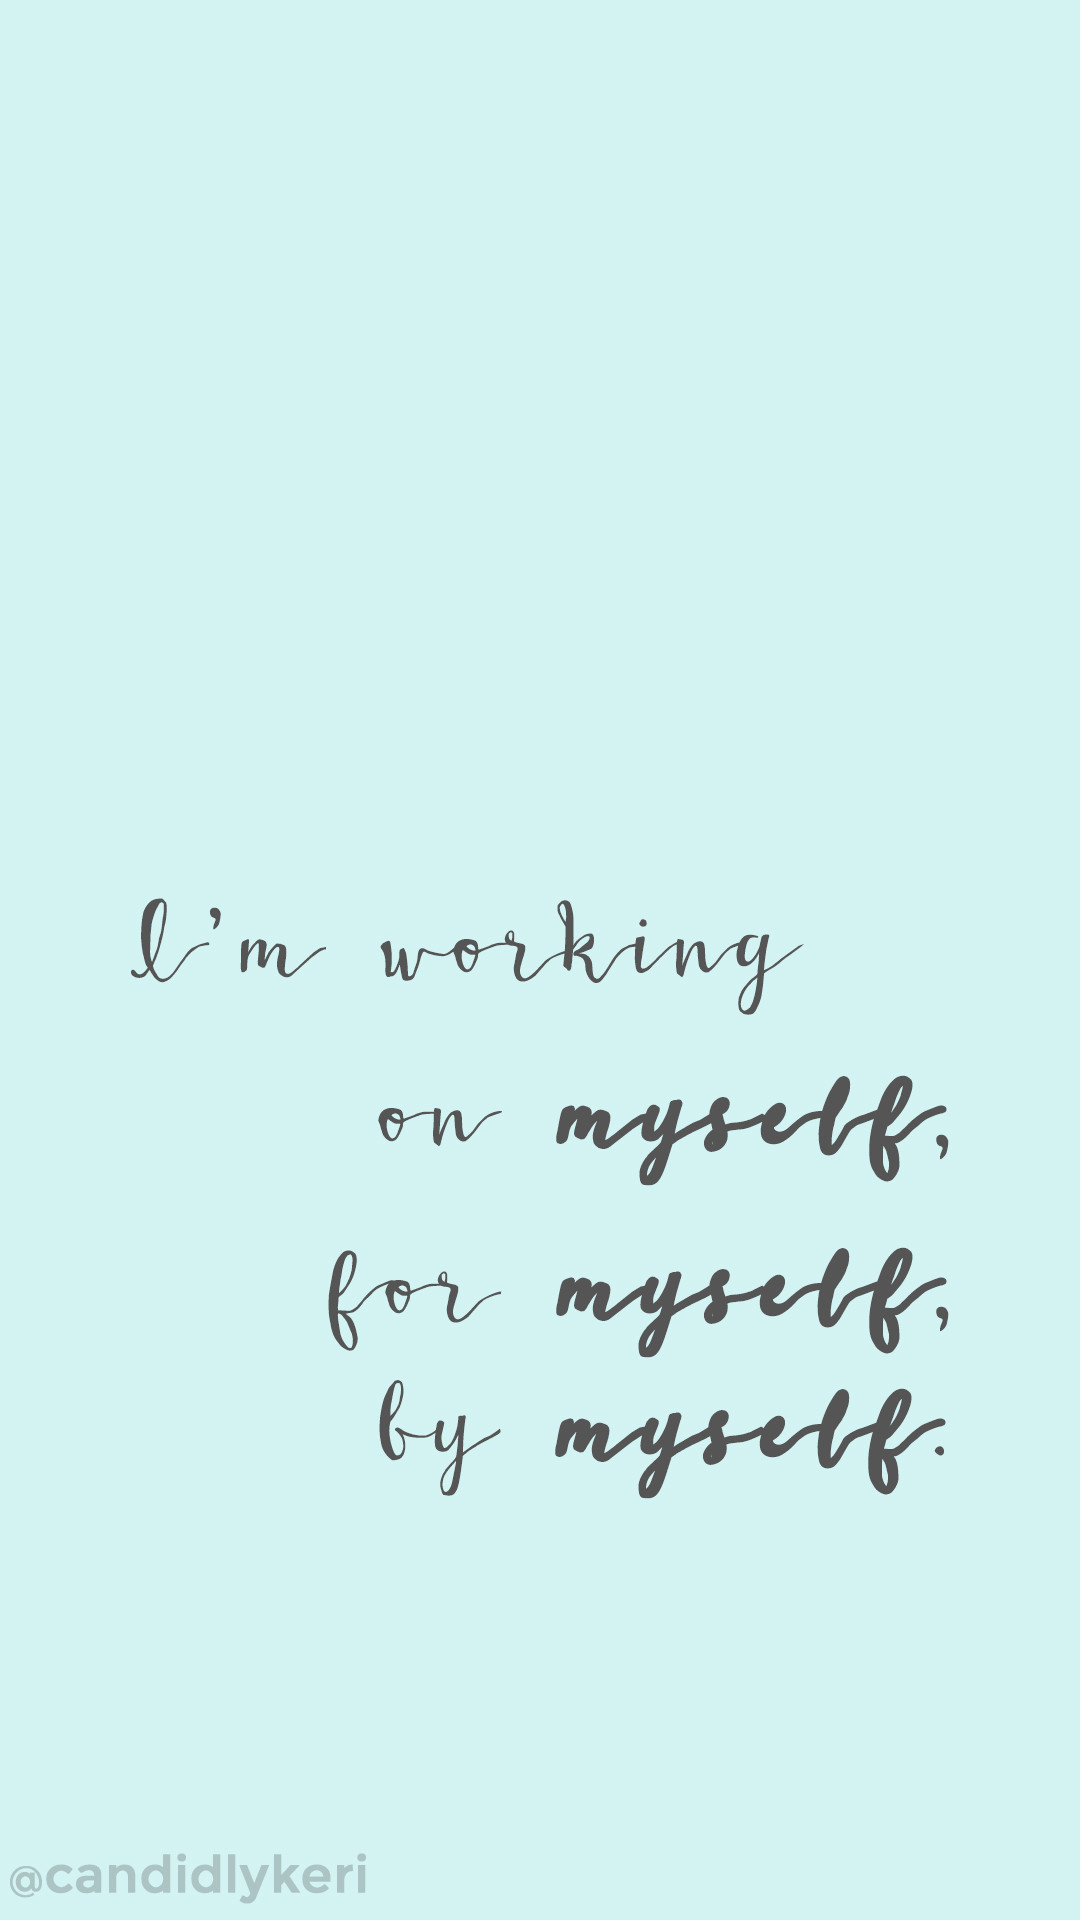 Free Download Inspirational Quotes Wallpaper Iphone 77 Images 1080x1920 For Your Desktop Mobile Tablet Explore 47 Wallpapers Images With Quotes Funny Wallpapers With Quotes Cute Love Wallpapers With Quotes